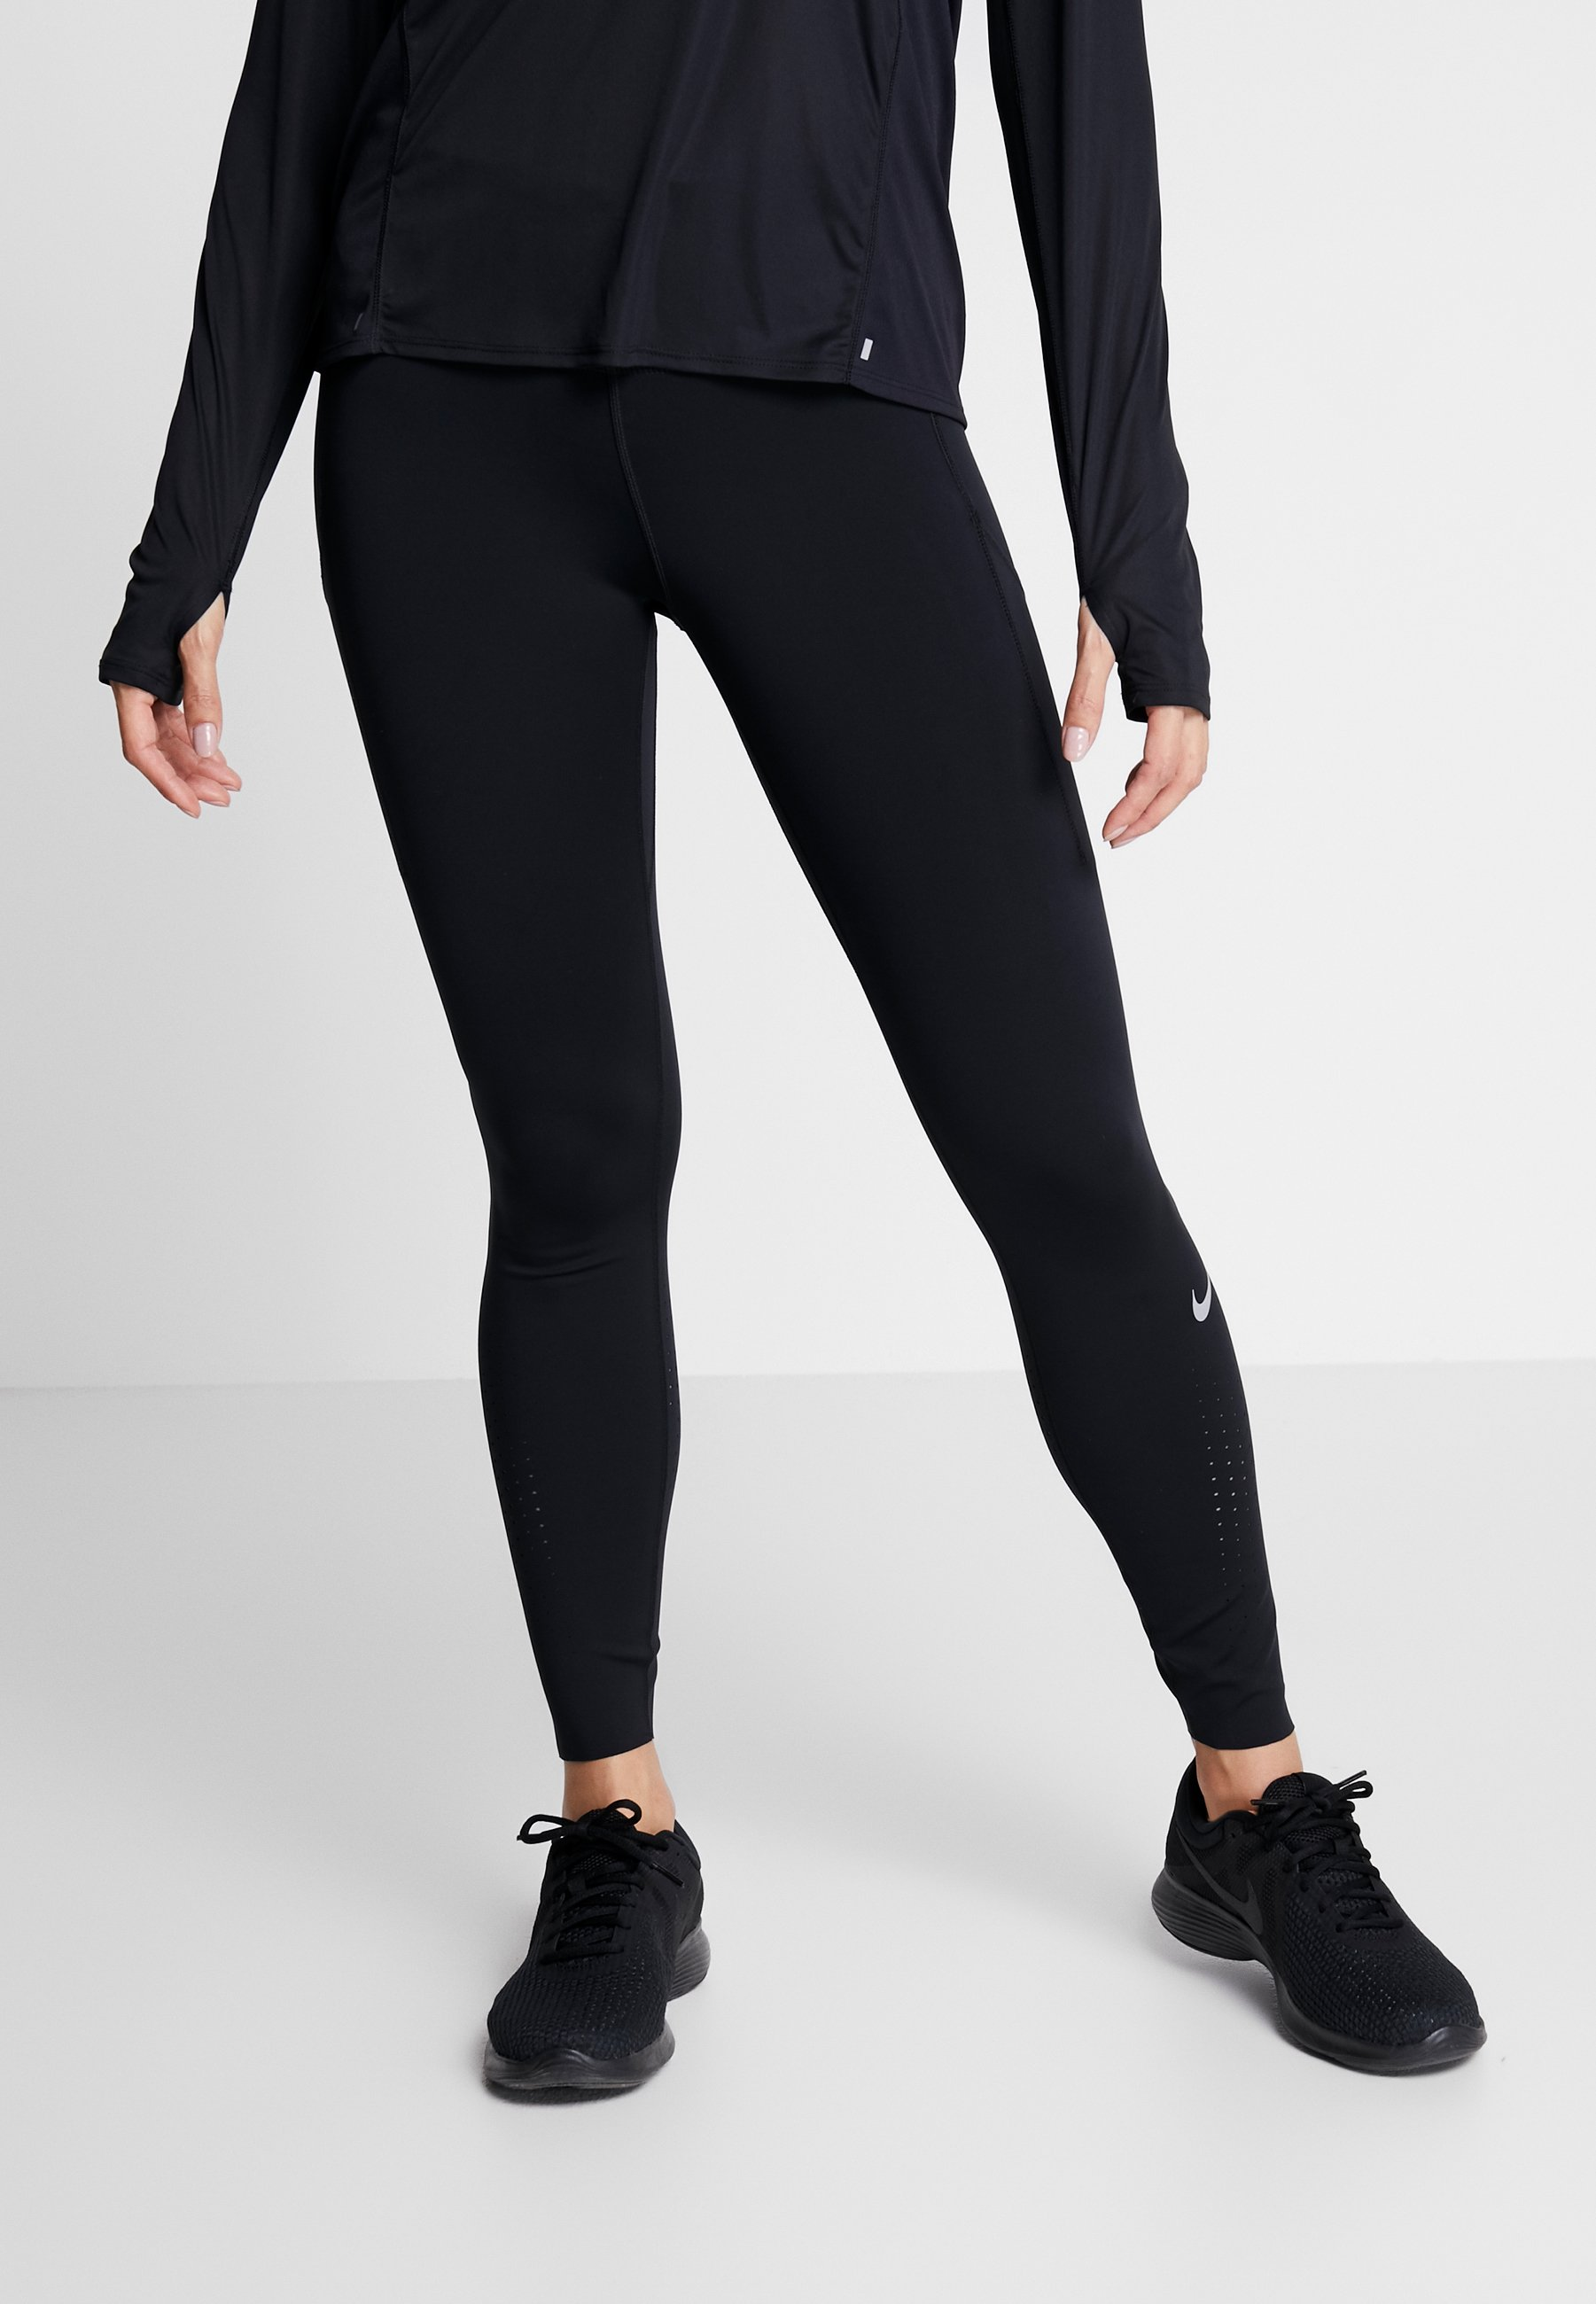 Nike Performance ONE DAISY Tights blacklaser blue